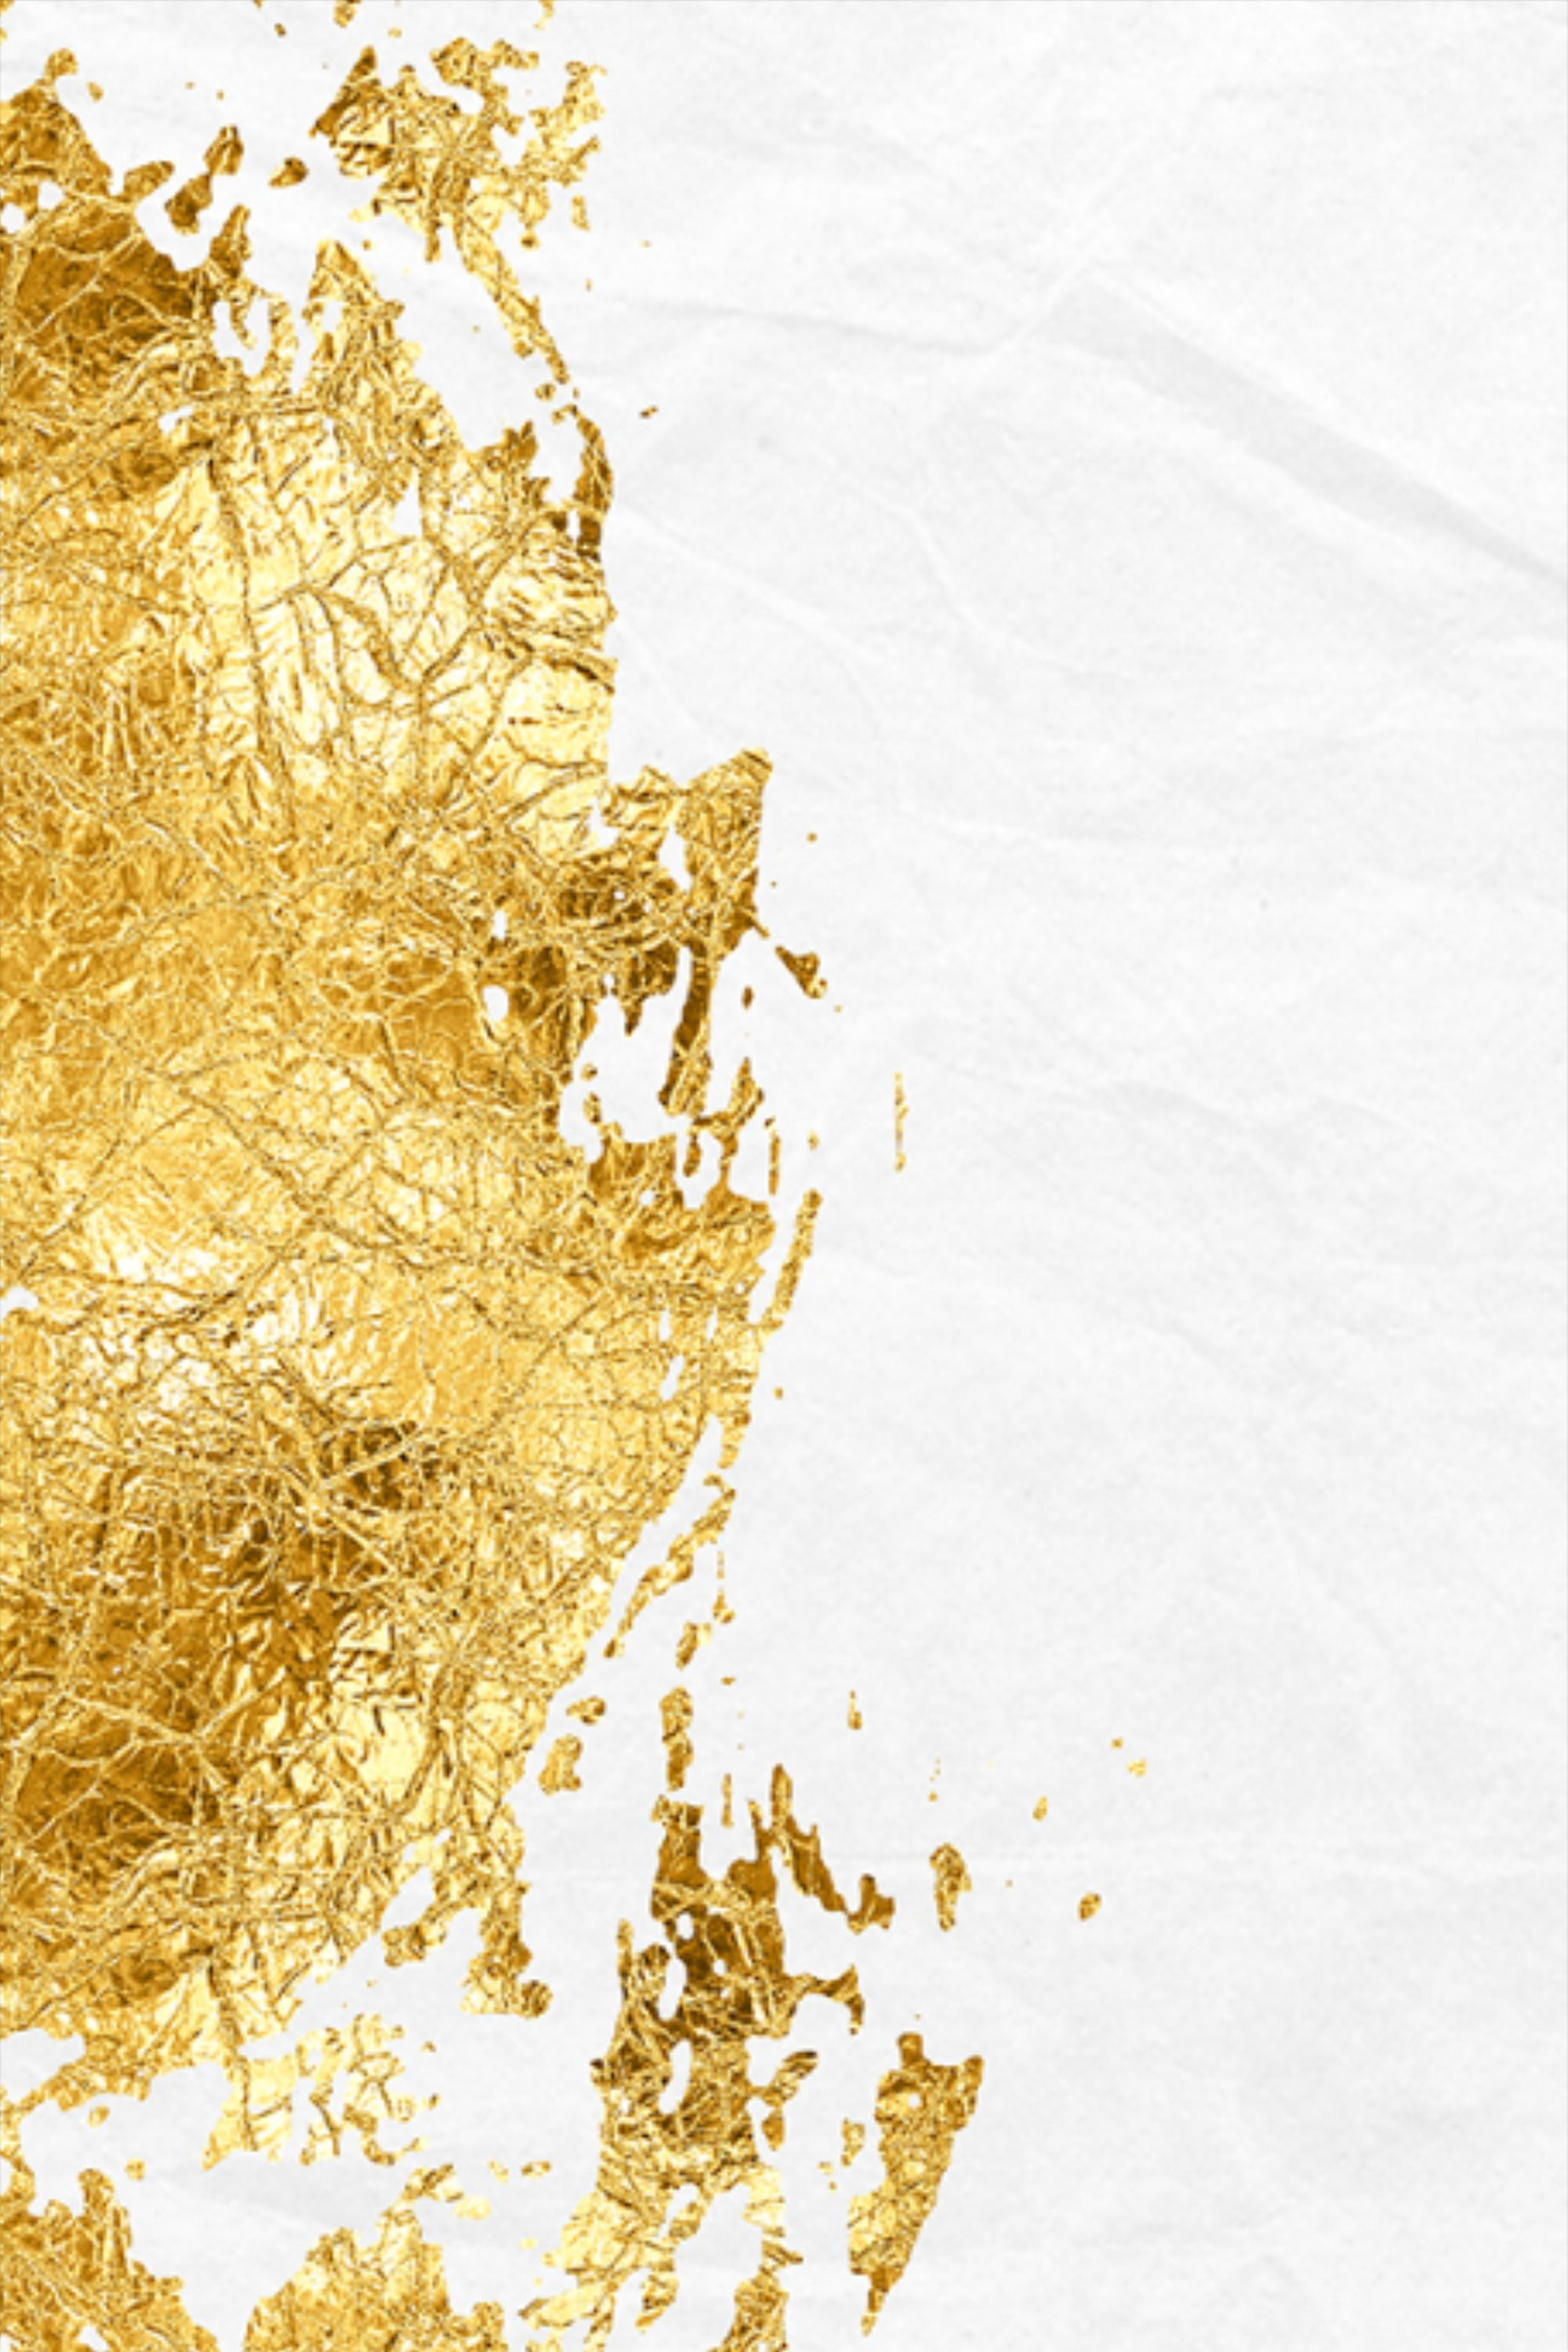 Gold Foil Flake Clipart Gold Borders Overlays Gold Foil Frames Gold Grunge Png Clipart Gold Leaf Art Gold Design Elemets Gold Clipart Gold Design Background Gold Glitter Background Gold Clipart